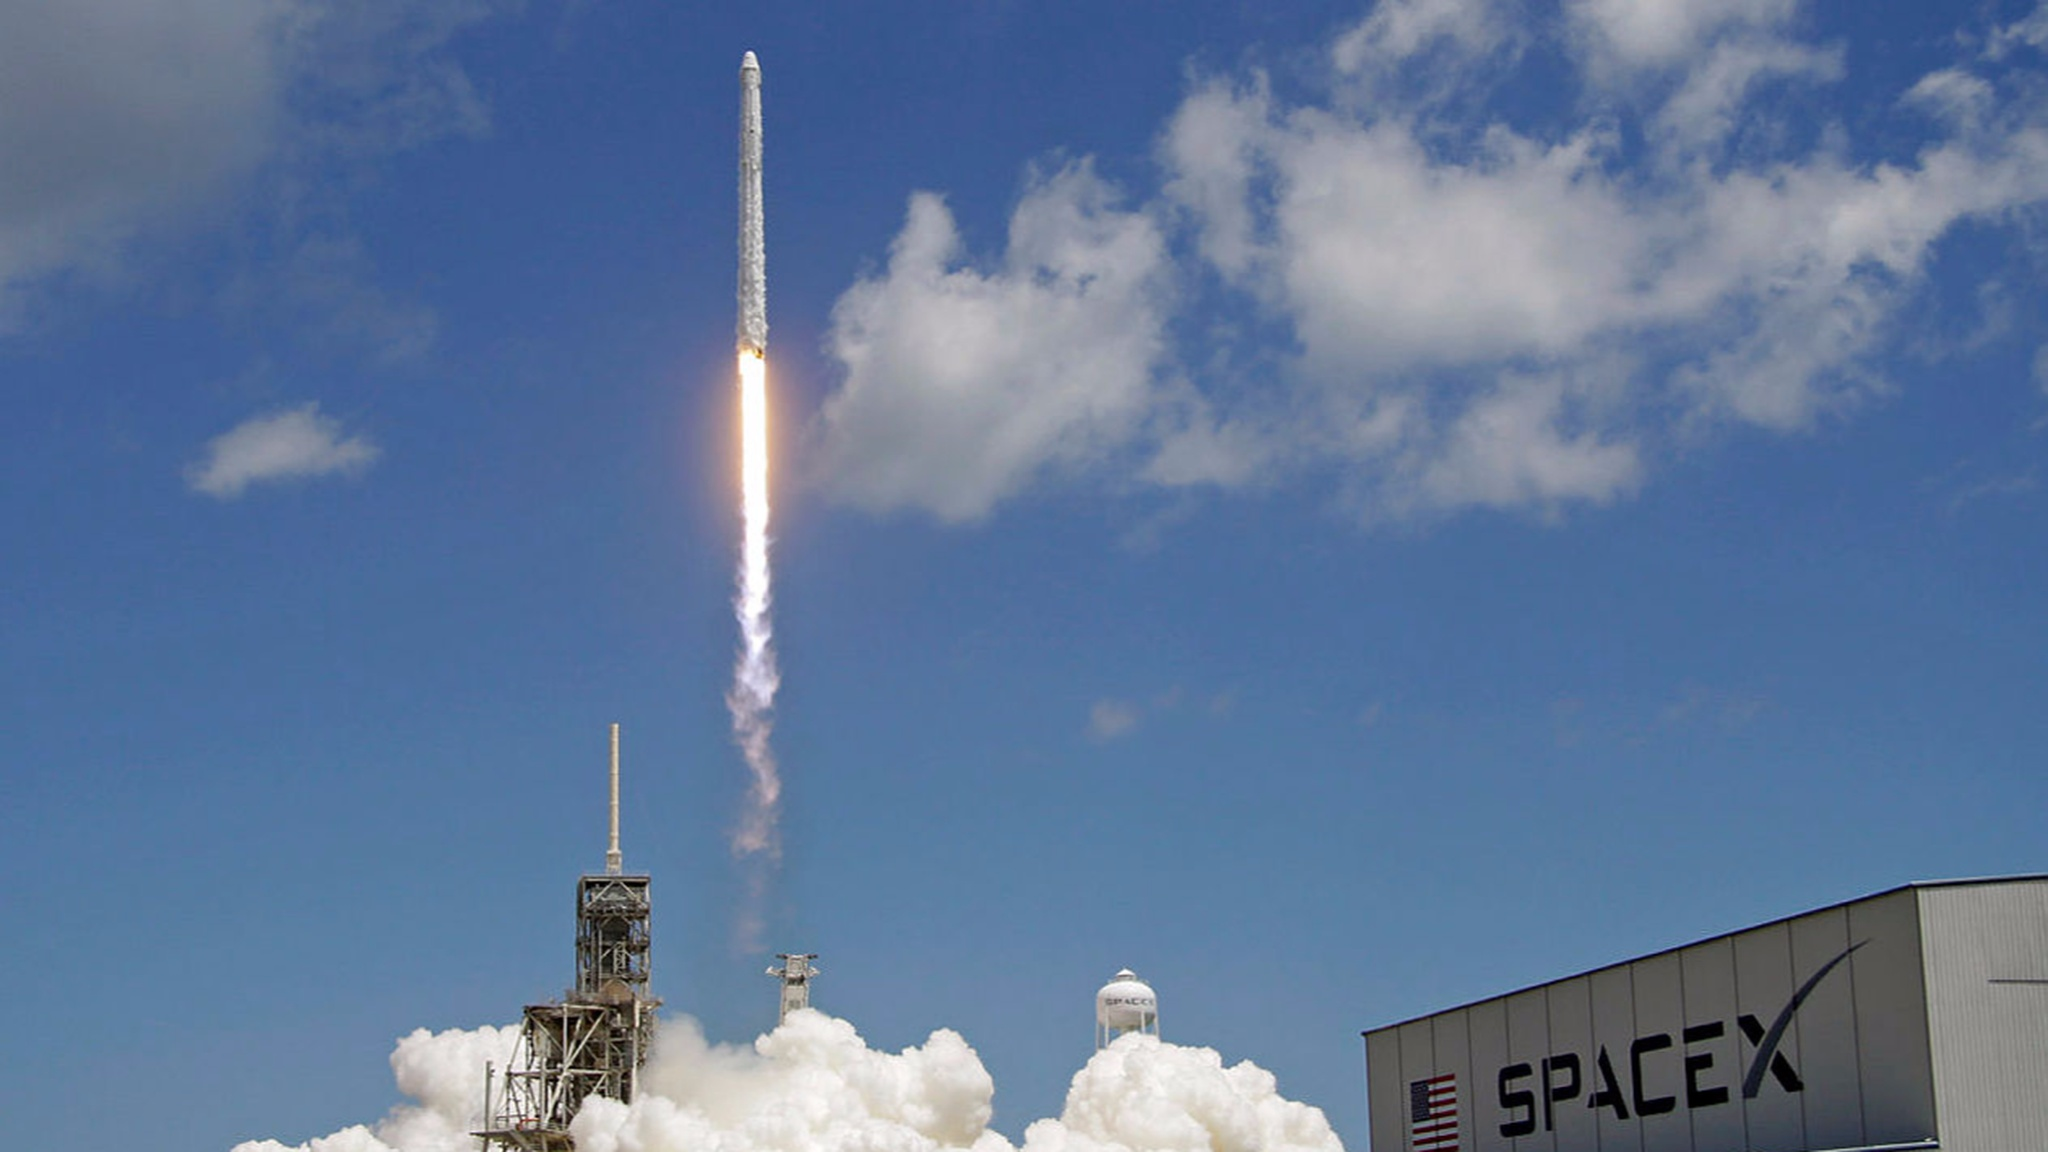 Ready for a SpaceX IPO? | FT Alphaville